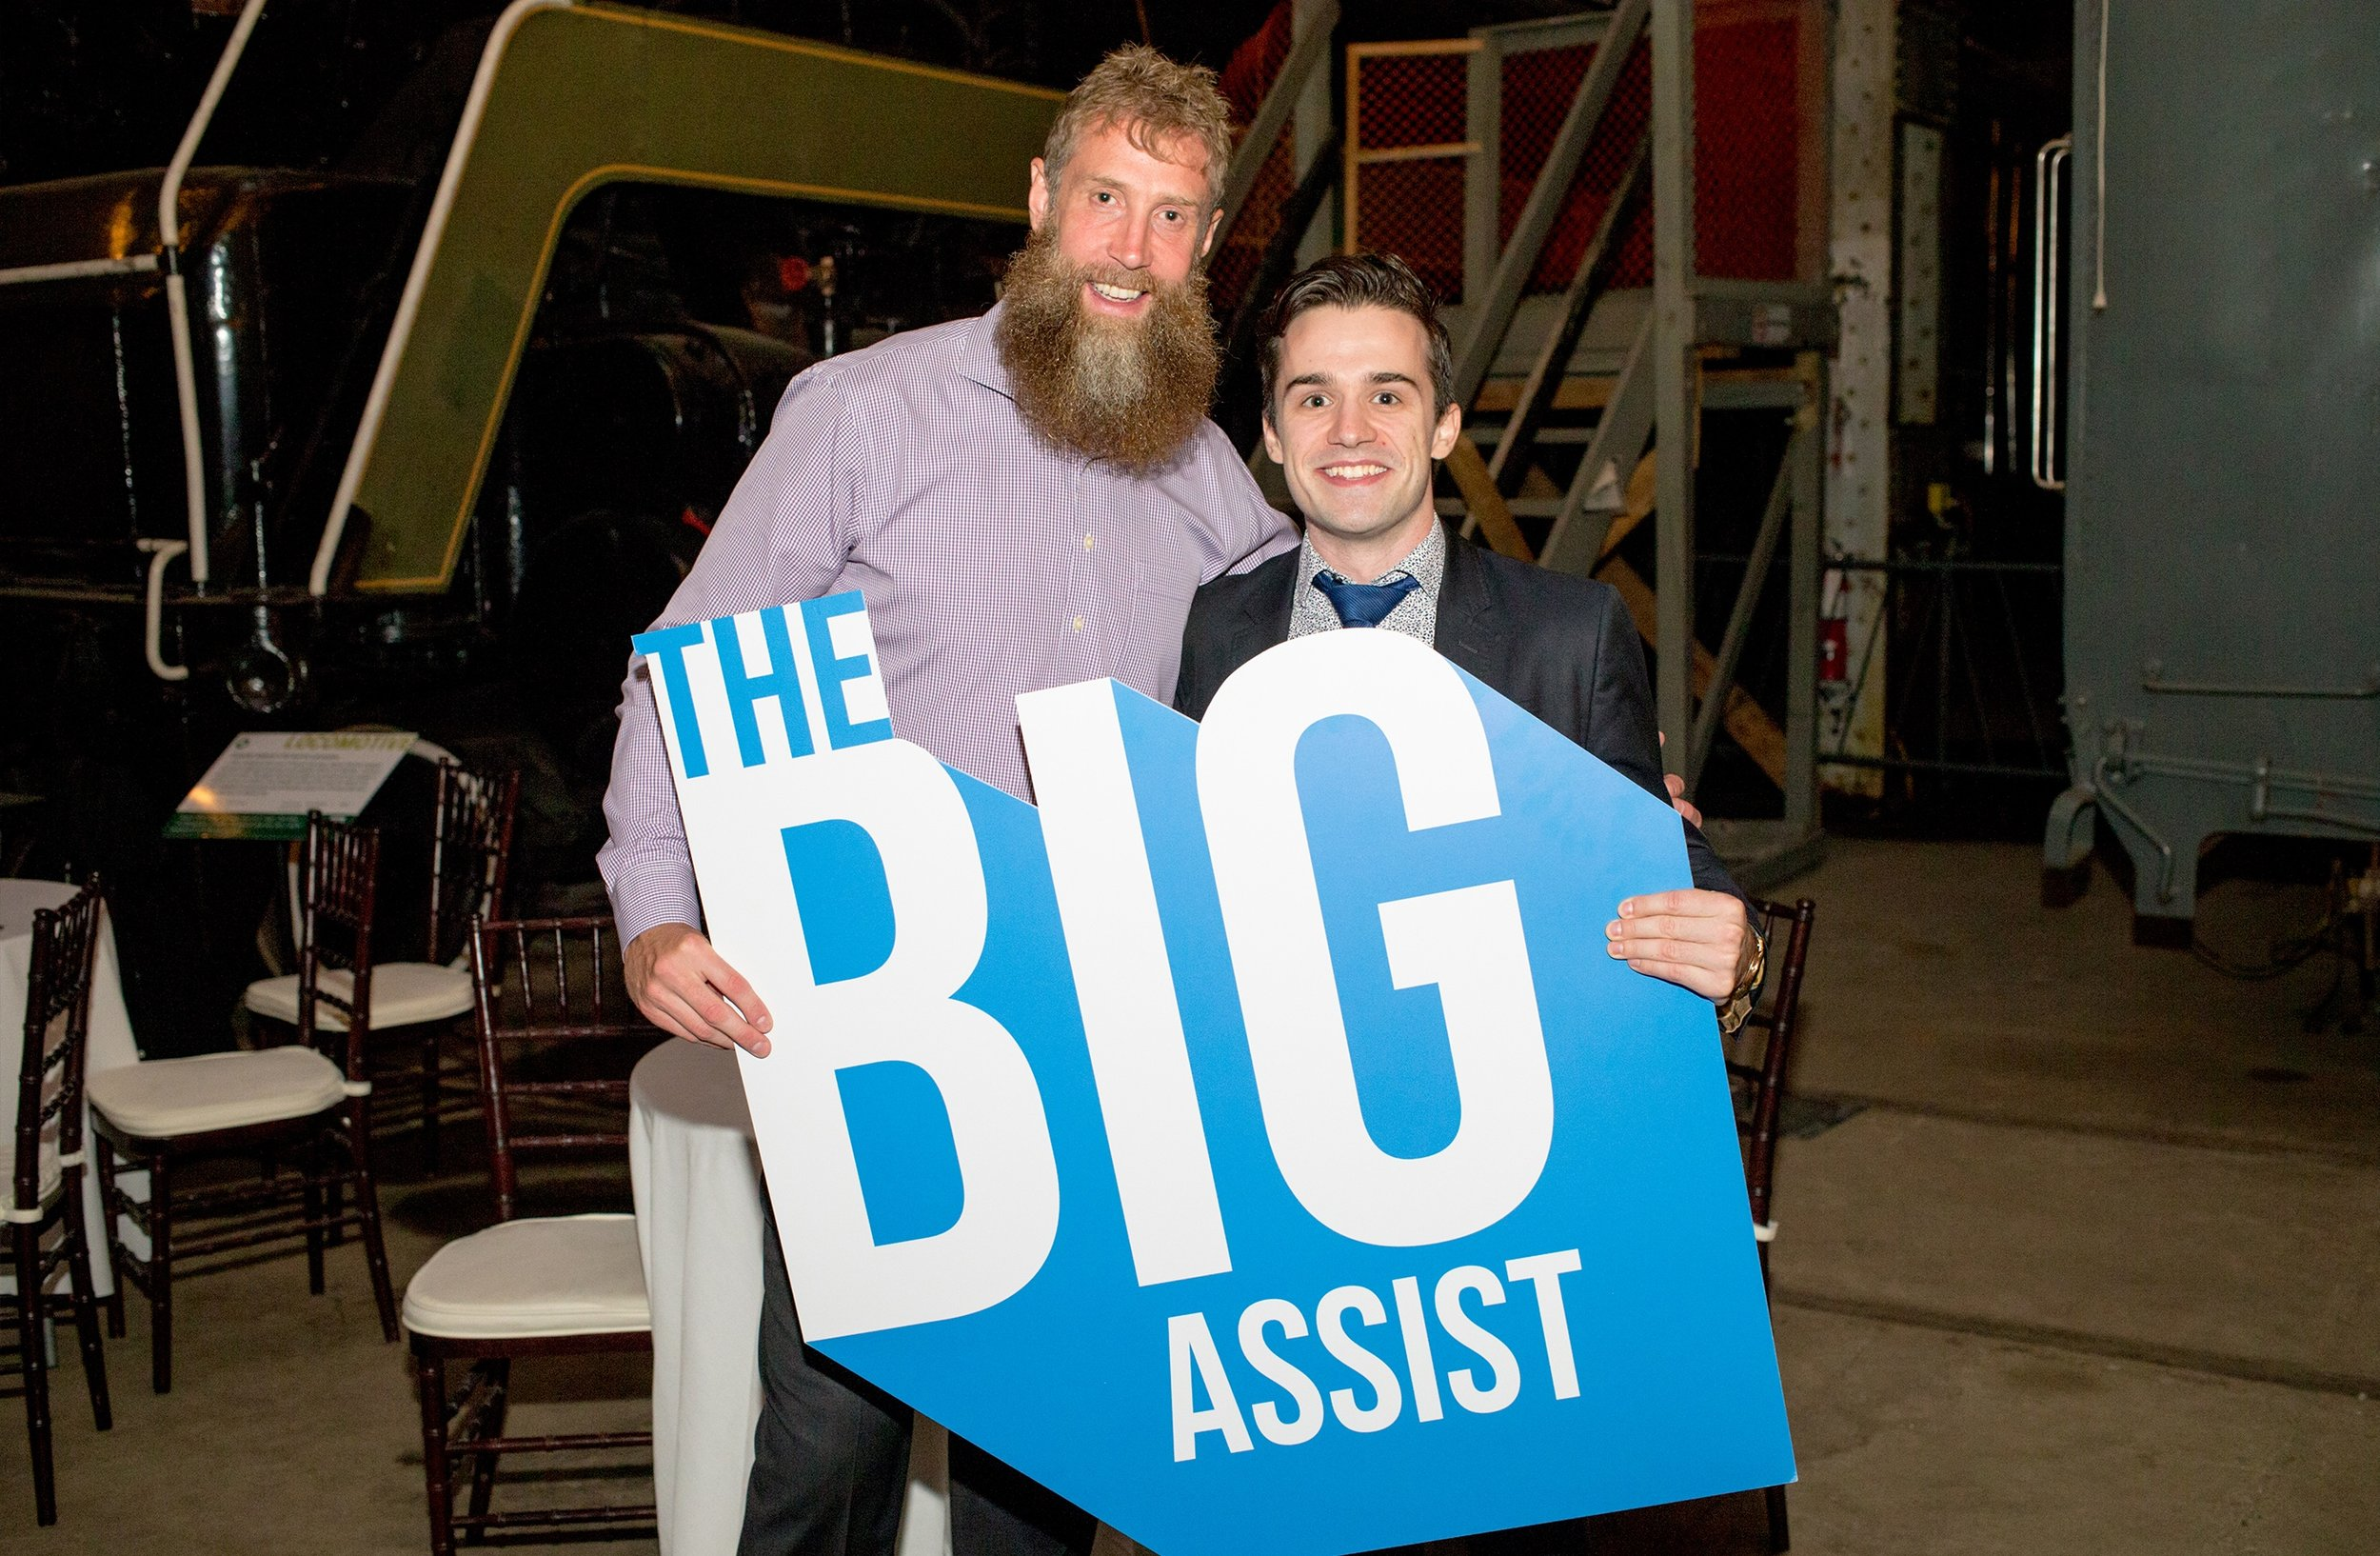 the big assist logos31 - cropped.jpg